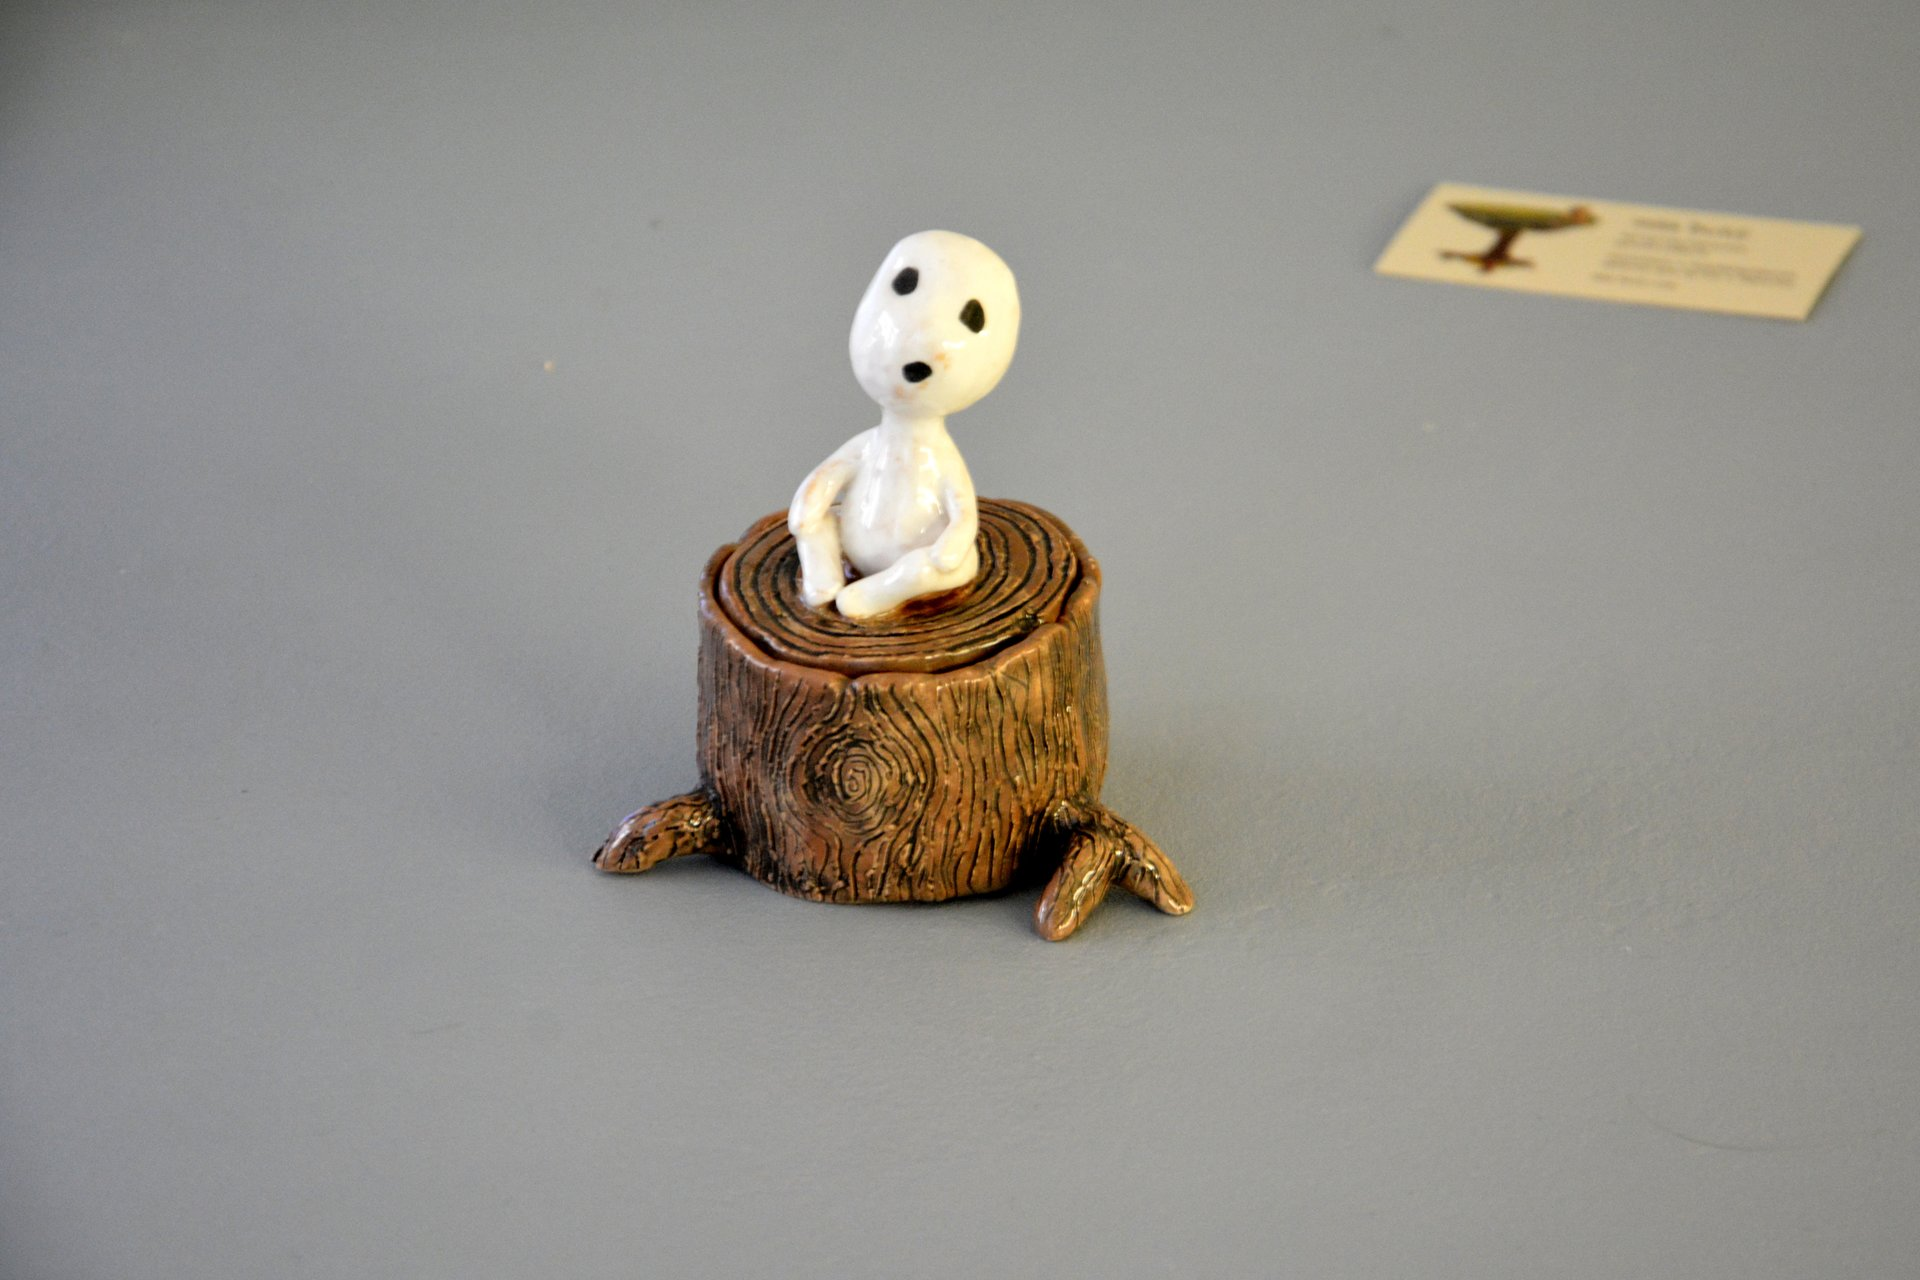 Figurine of the Kodama of tree spirit on the hemp, height - 11 cm, diameter - 6 cm, photo 1 of 4.